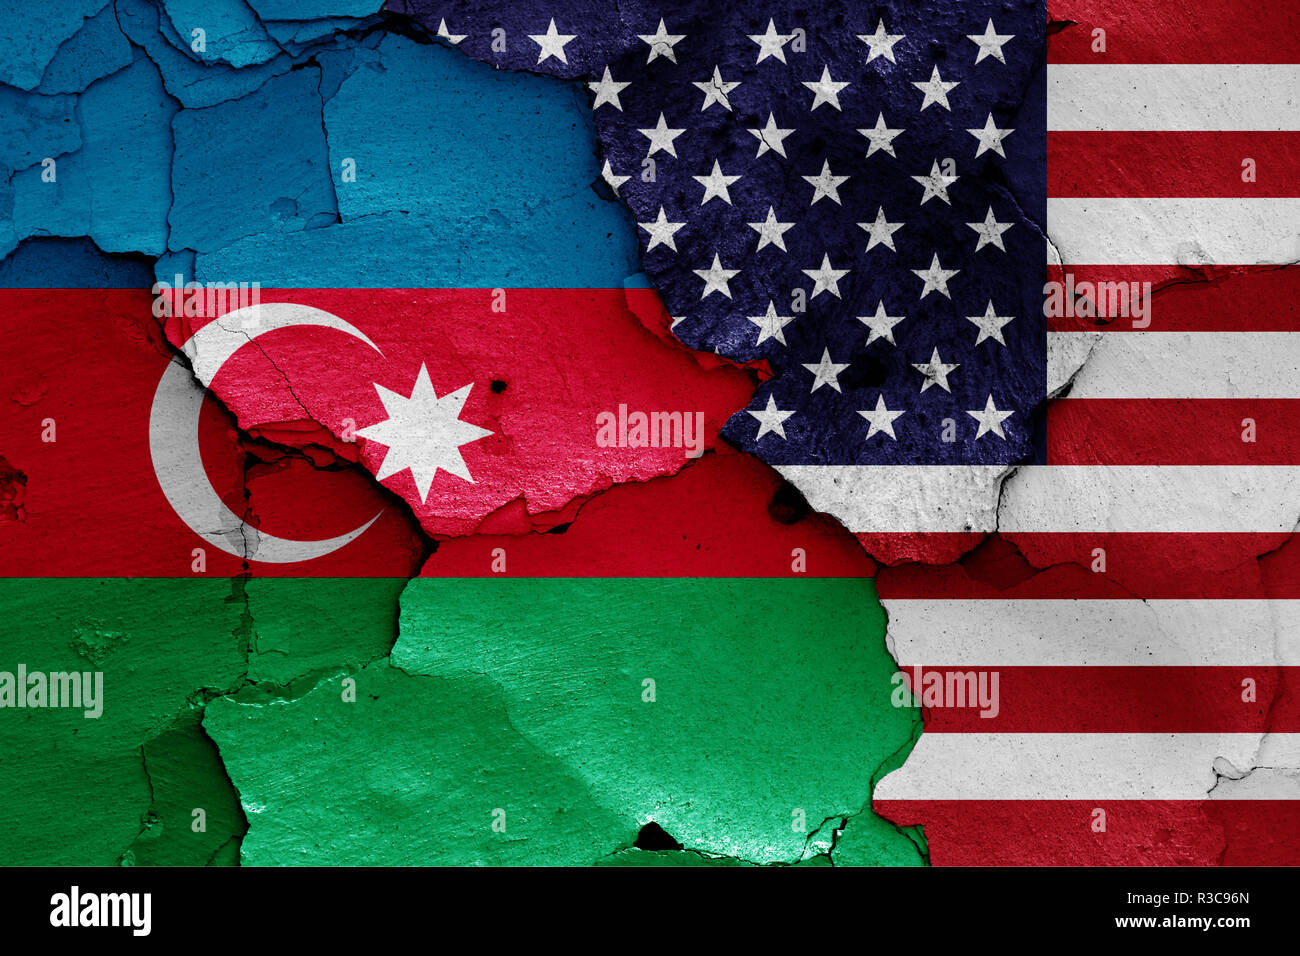 flags of Azerbaijan and USA painted on cracked wall - Stock Image